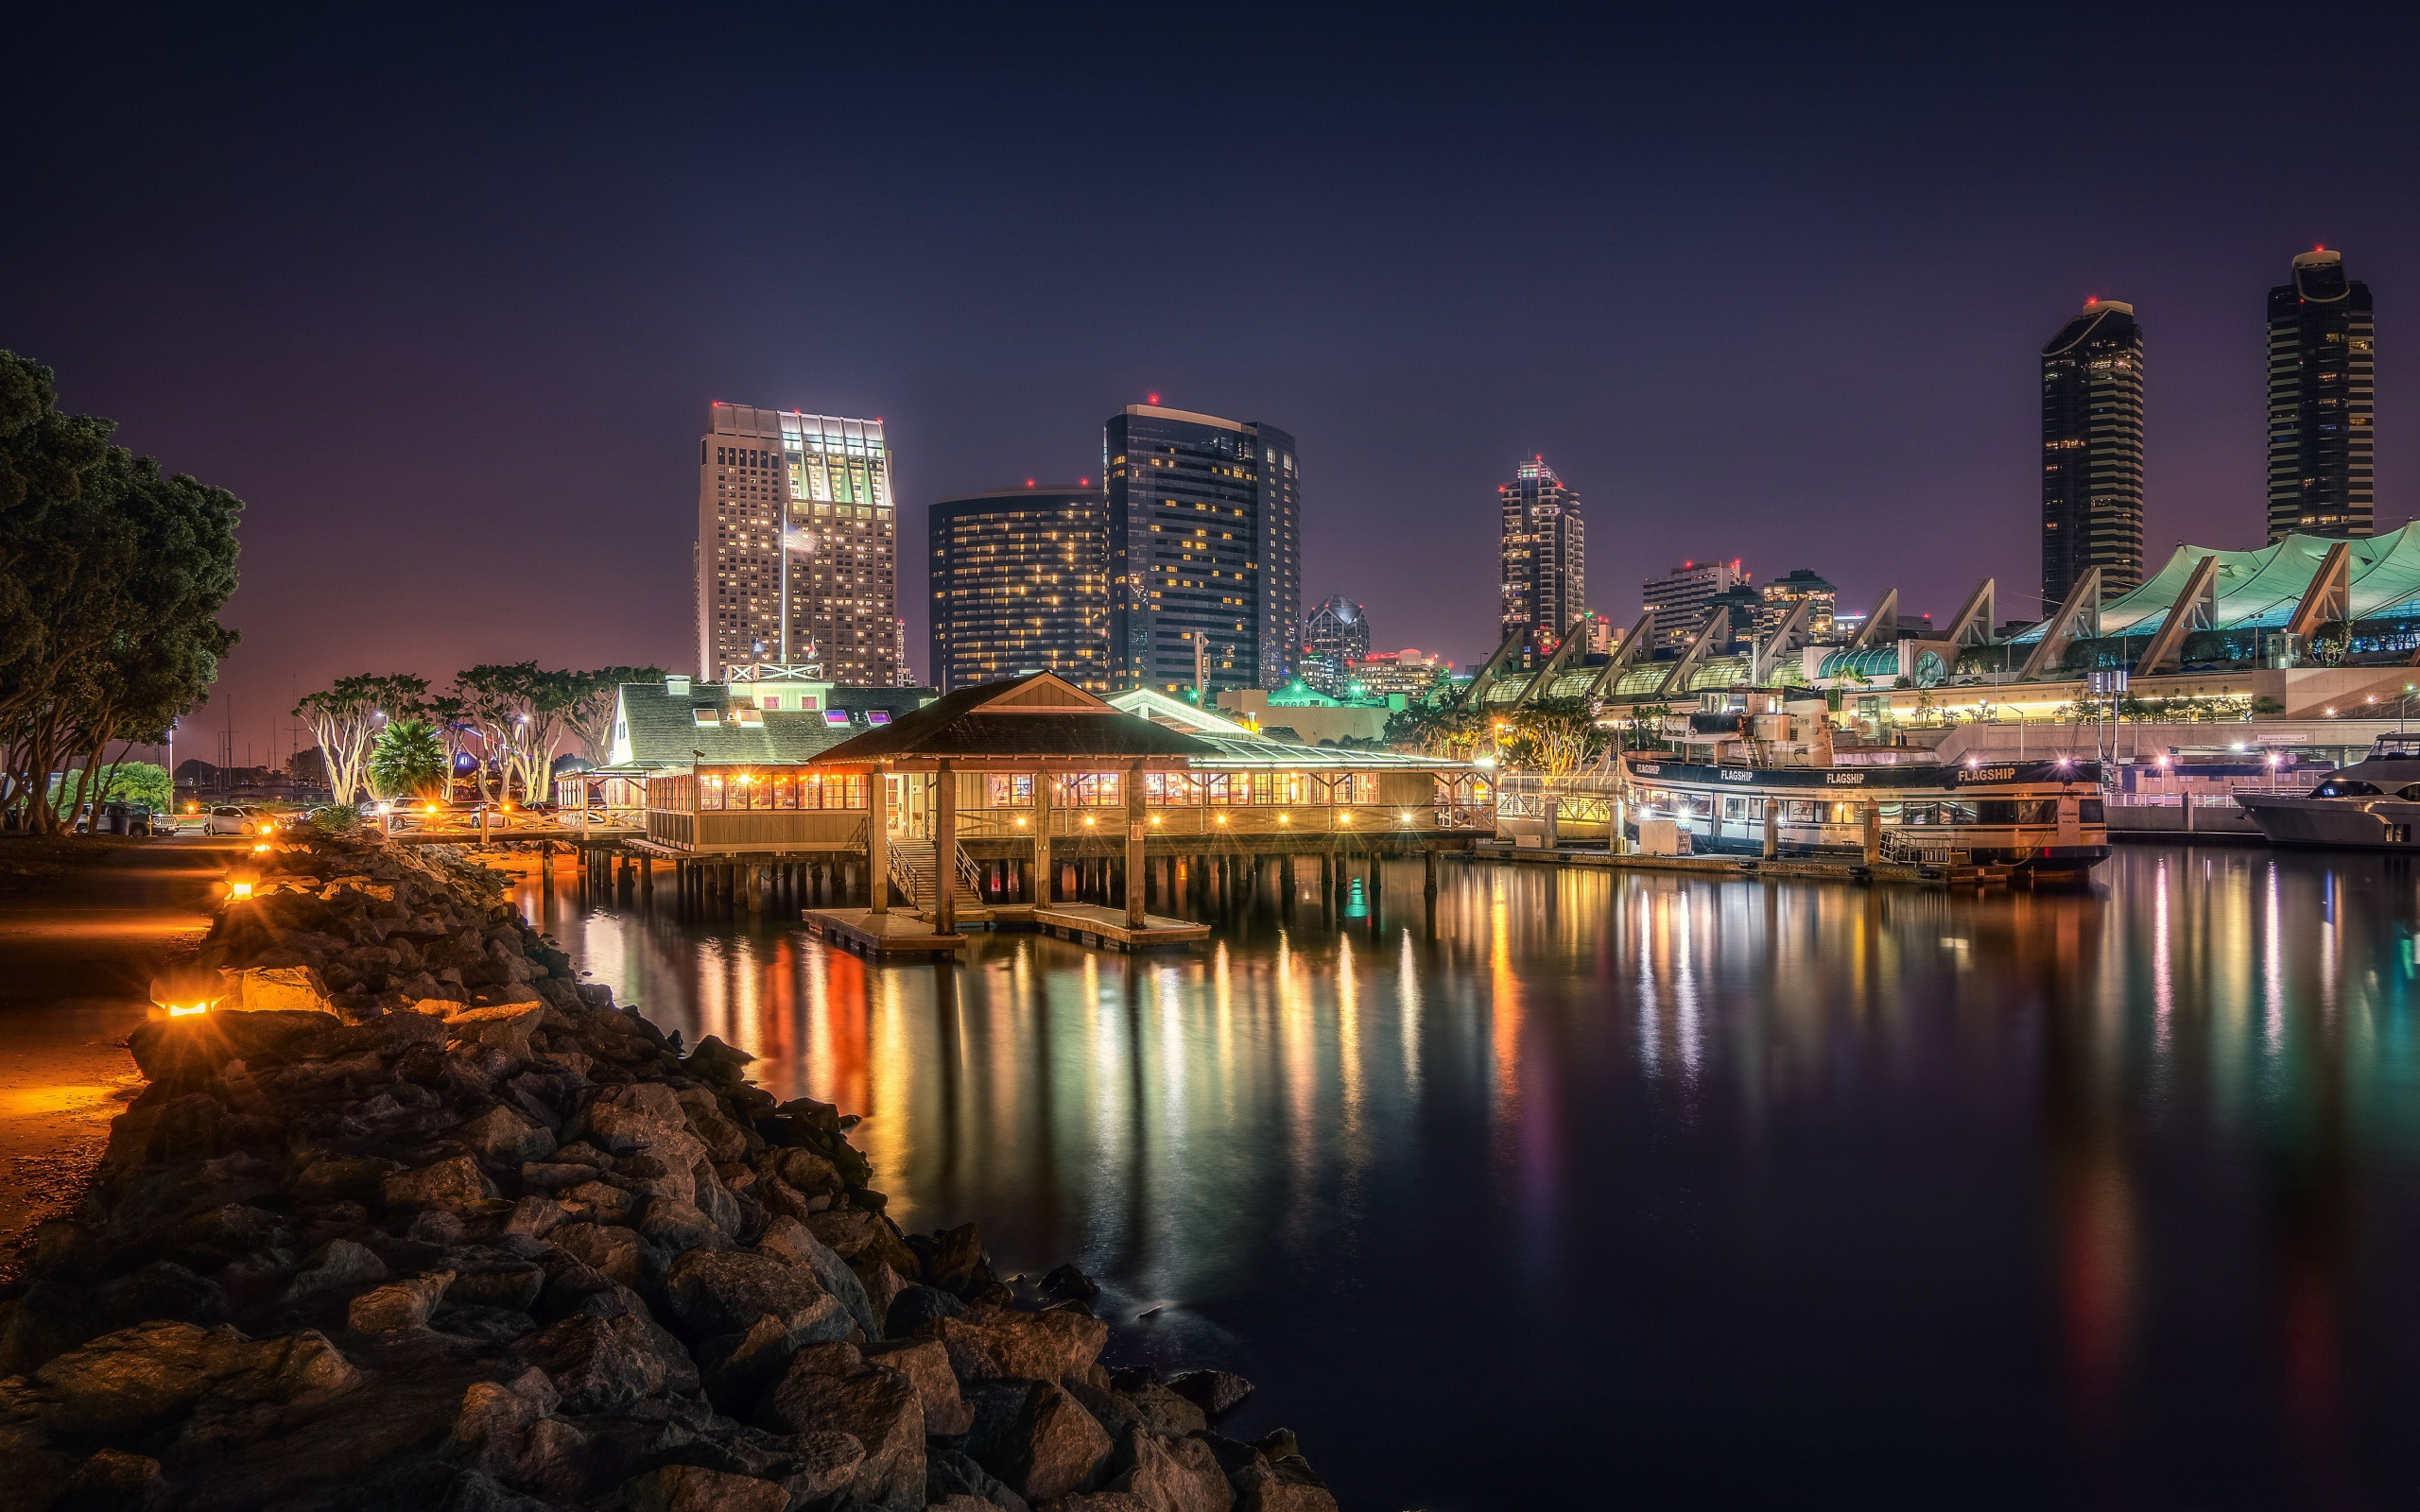 San Diego Night Scene Cities Hd Wallpaper Preview 10wallpaper Com